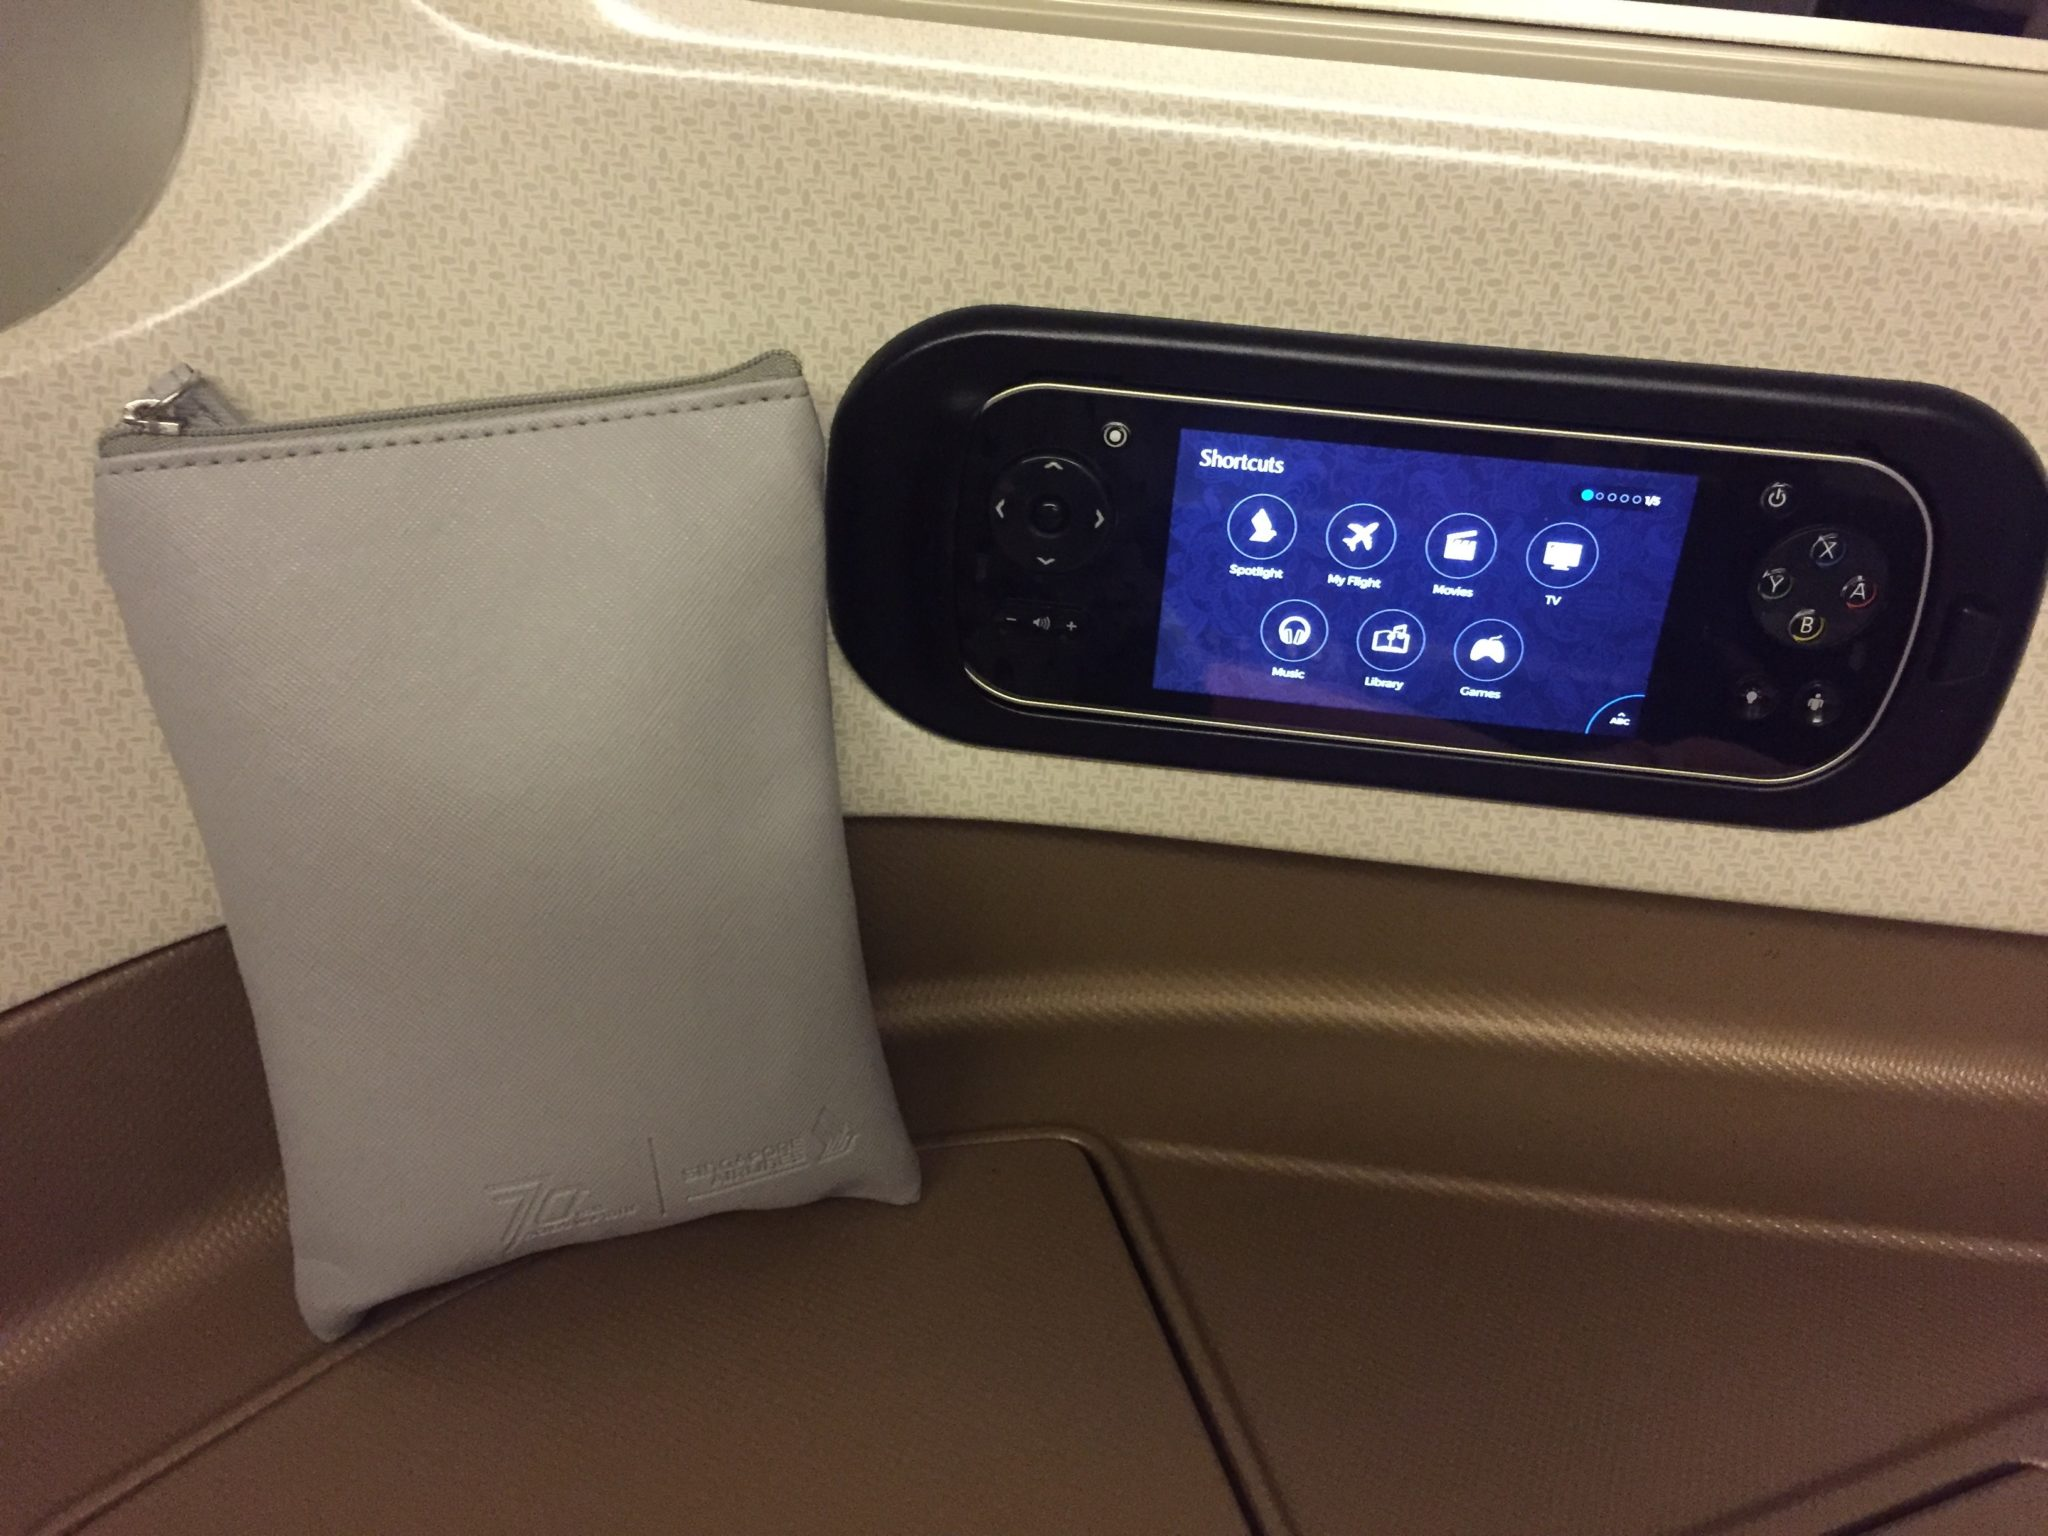 Singapore Airlines Business Class A330 - Remote & Amenities Kit